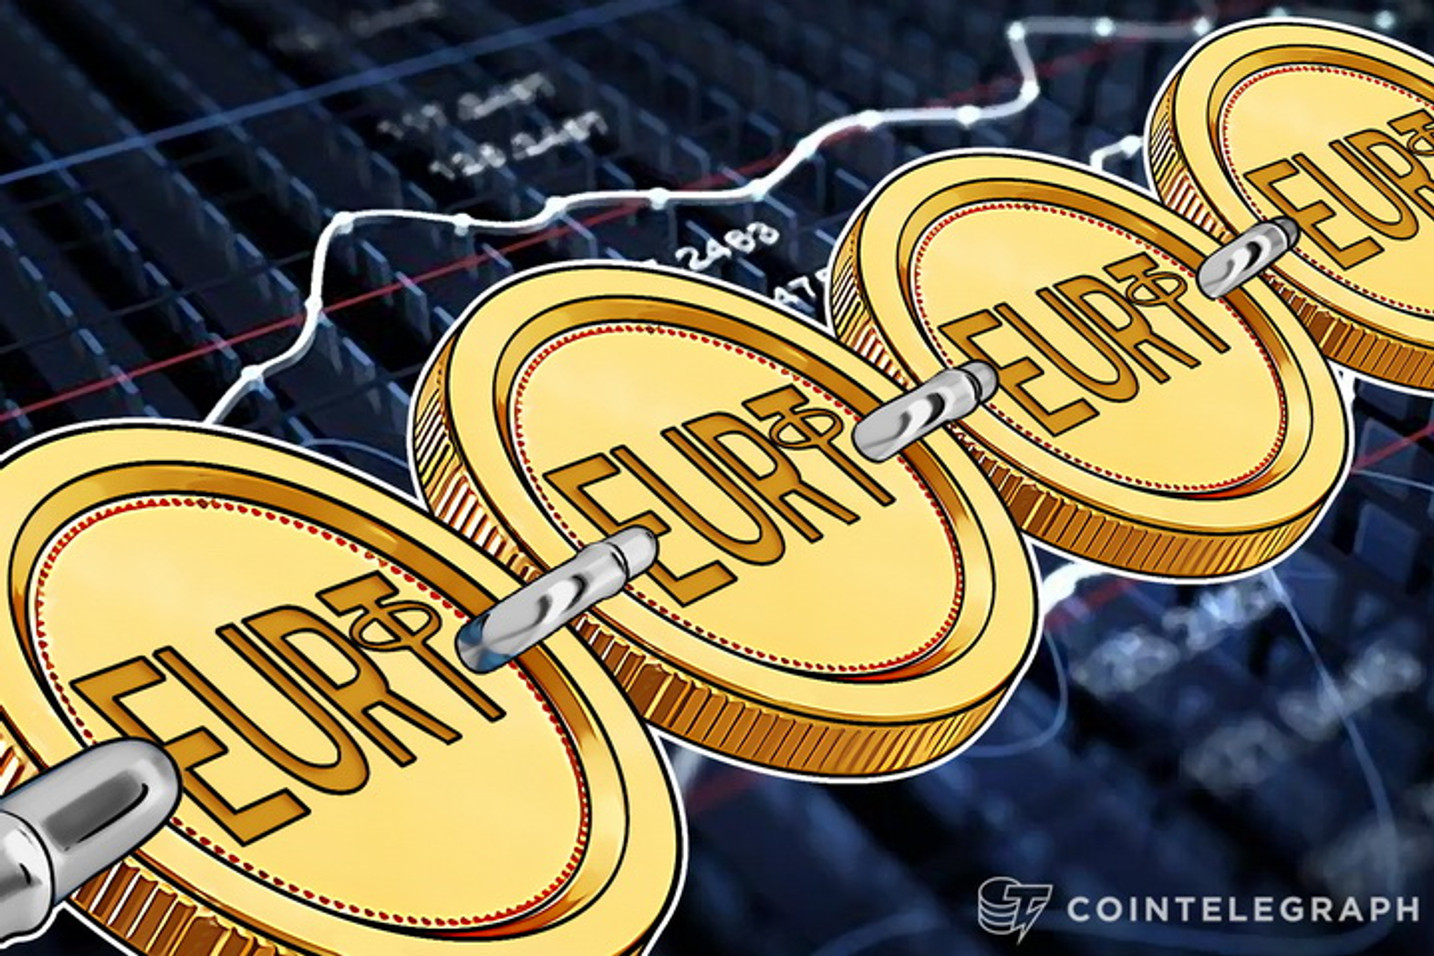 Tether and its Partners To Disrupt Conventional Trading On Bitcoin Blockchain